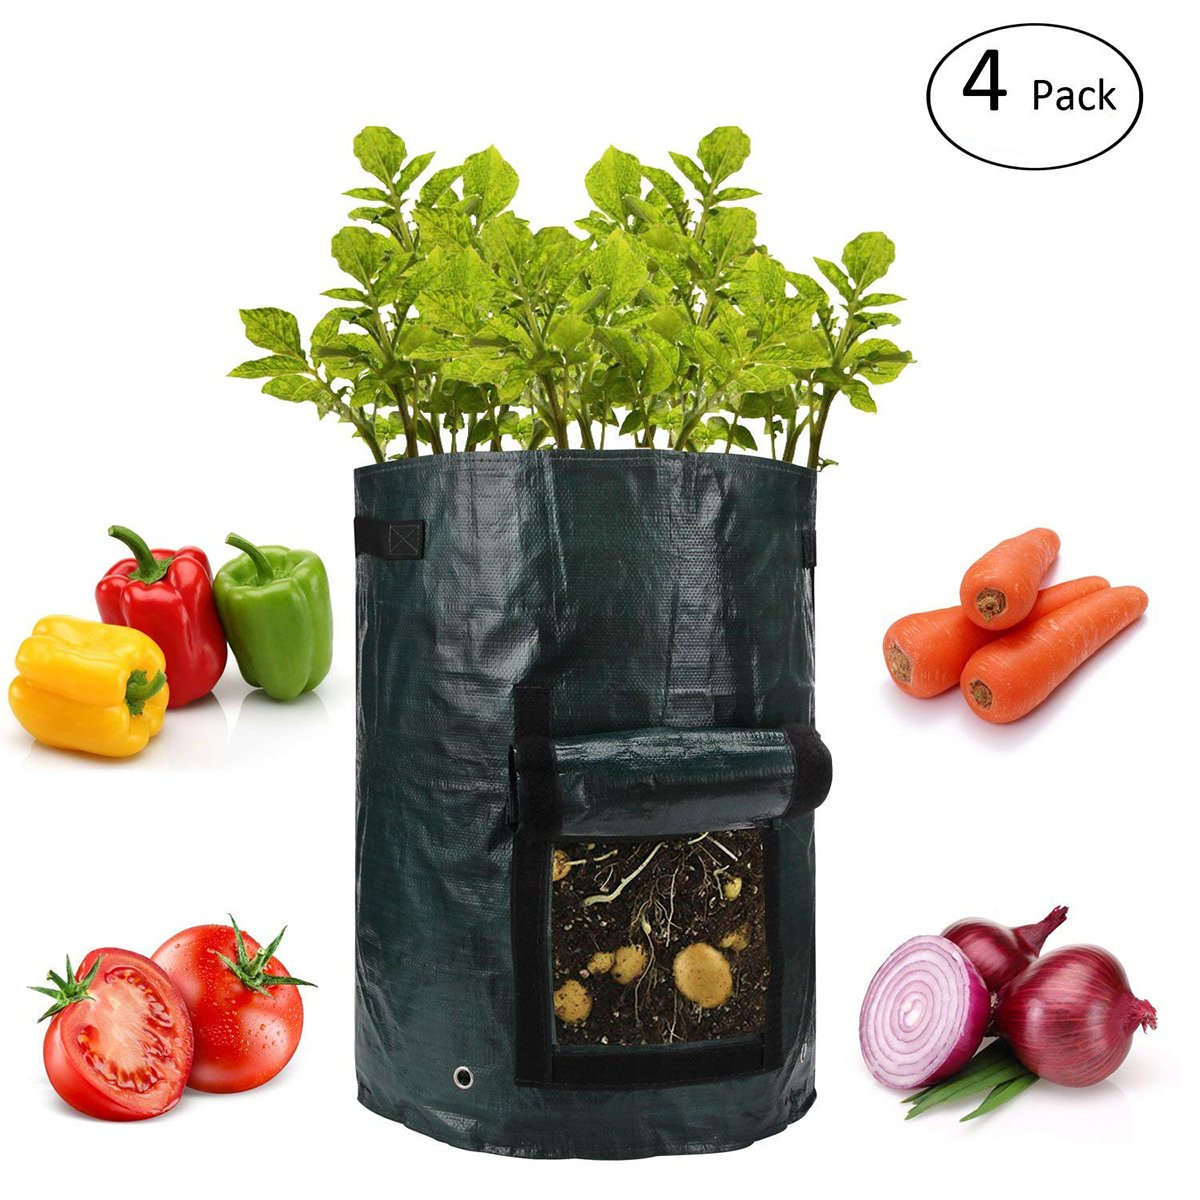 ANPHSIN 4 Pack 10 Gallon Garden Potato Grow Bags with Flap and Handles Aeration Fabric Pots Heavy Duty by ANPHSIN